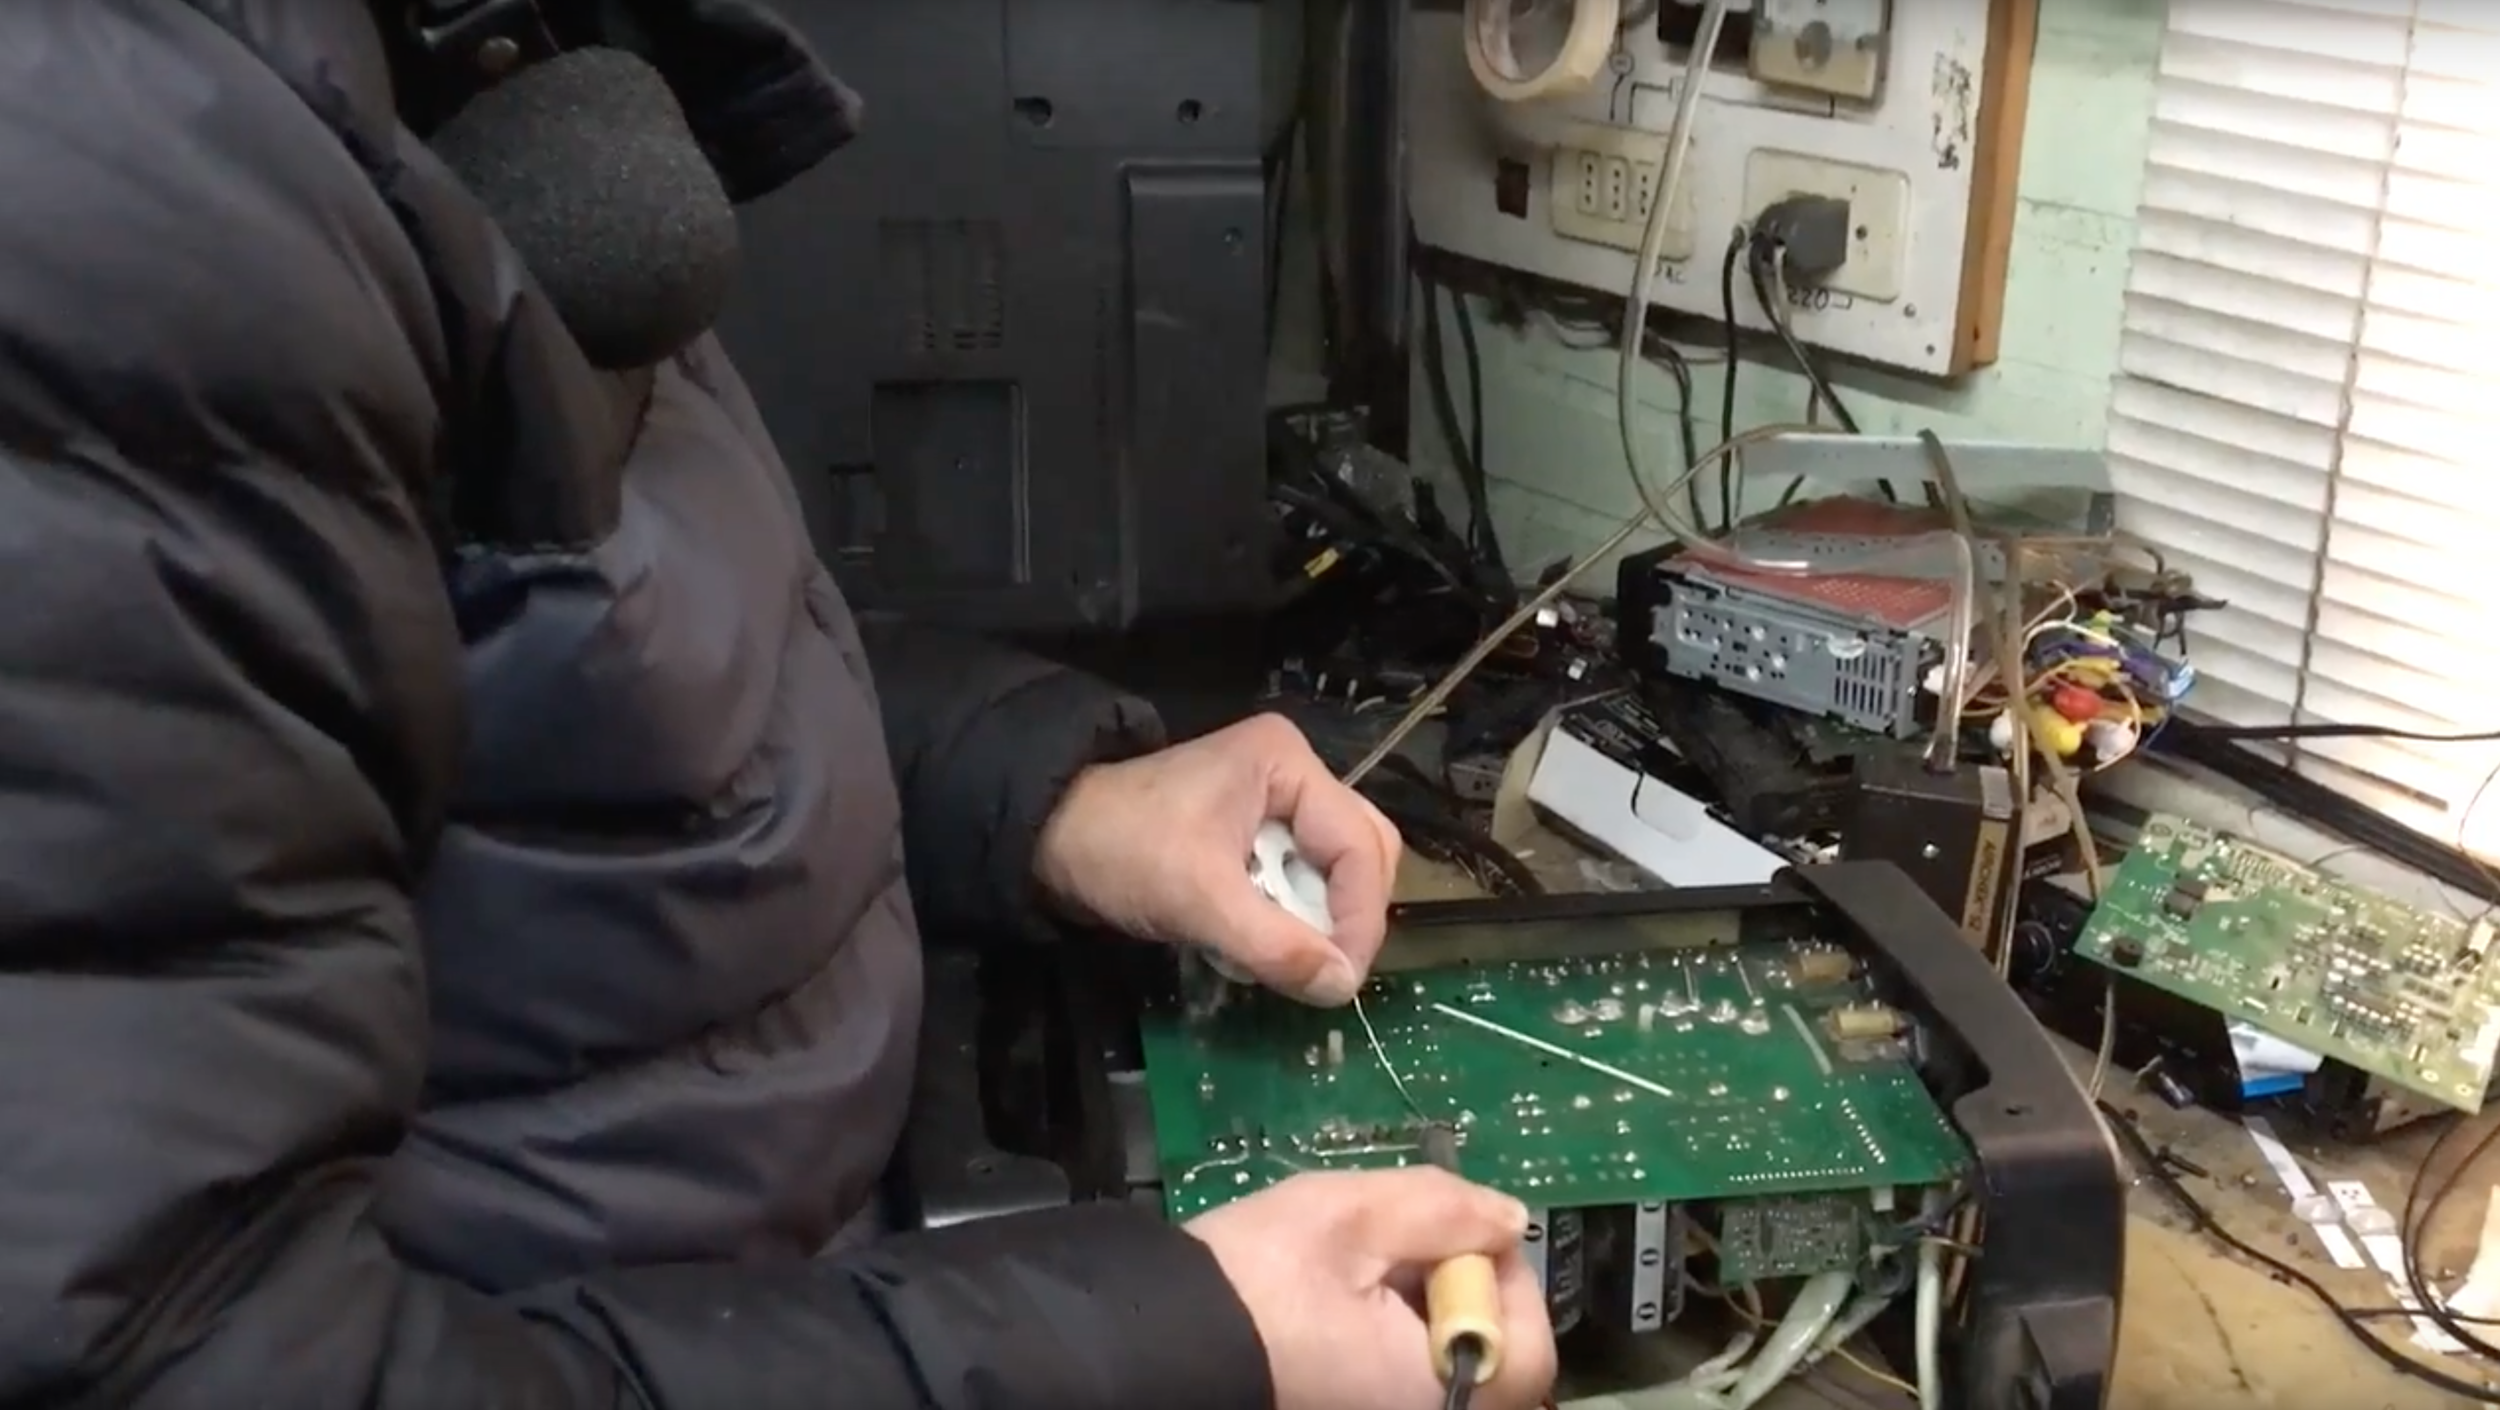 A e-waste recycler solders a printed circuit board in Chile. Image credit: University of Michigan